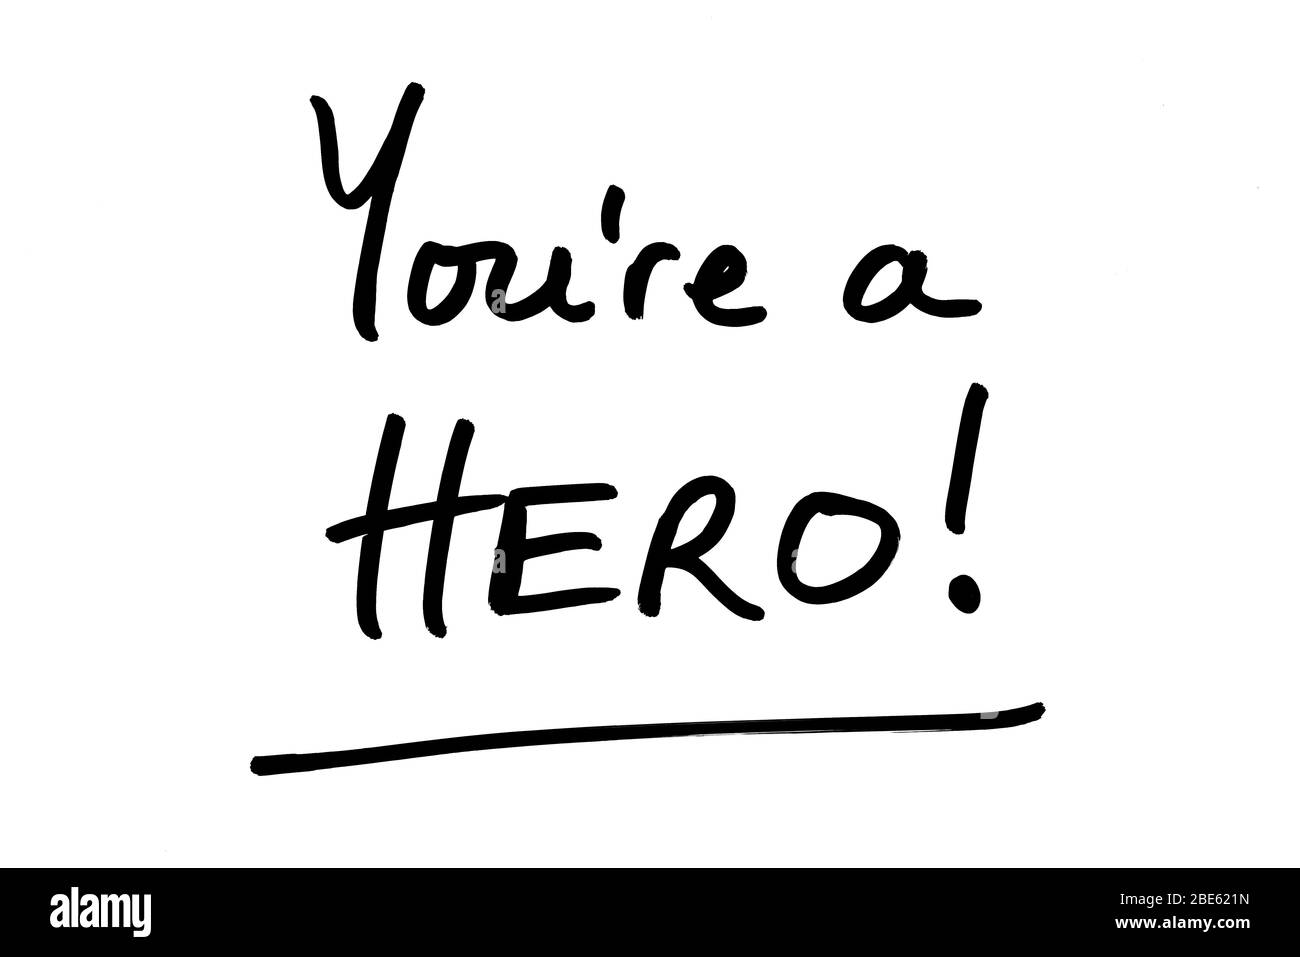 Youre a Hero! handwritten on a white background. Stock Photo